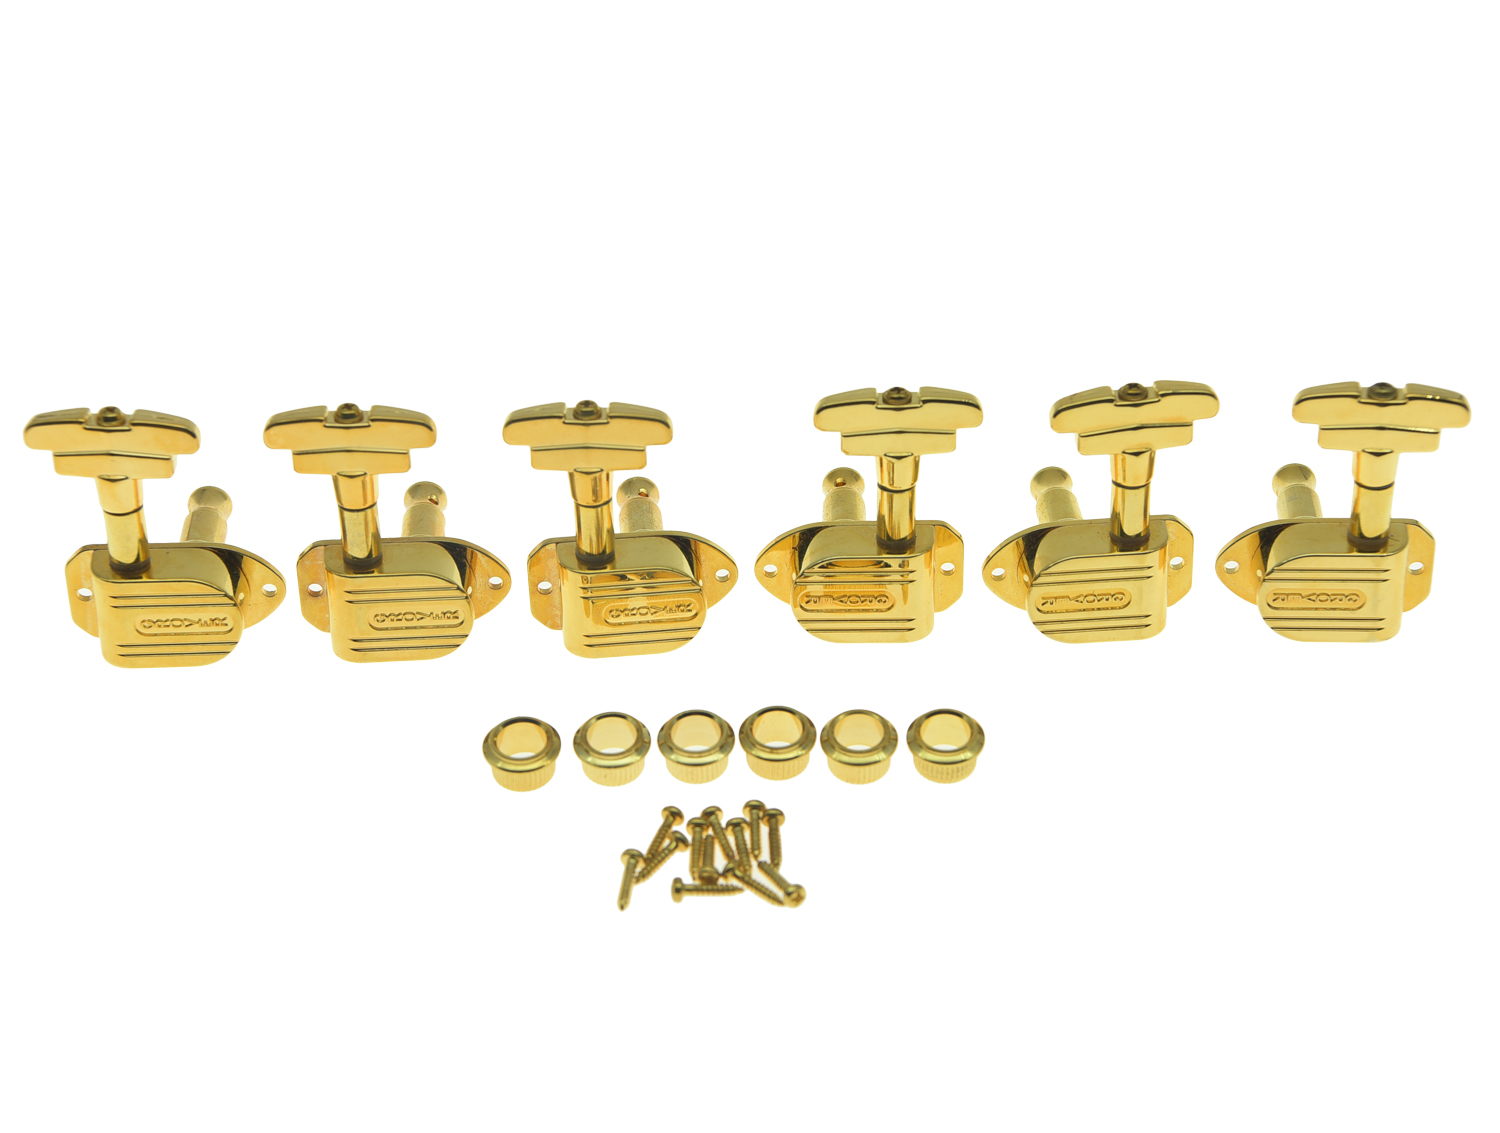 Dopro Grover Set of 6 Imperial 150 Series 150G Guitar Tuners 3x3 Guitar Tuning Keys 16:1 Guitar Machine Heads Gold electric acoustic guitar string tuning pegs keys tuners machine heads 3x3 gold 2 set page 2